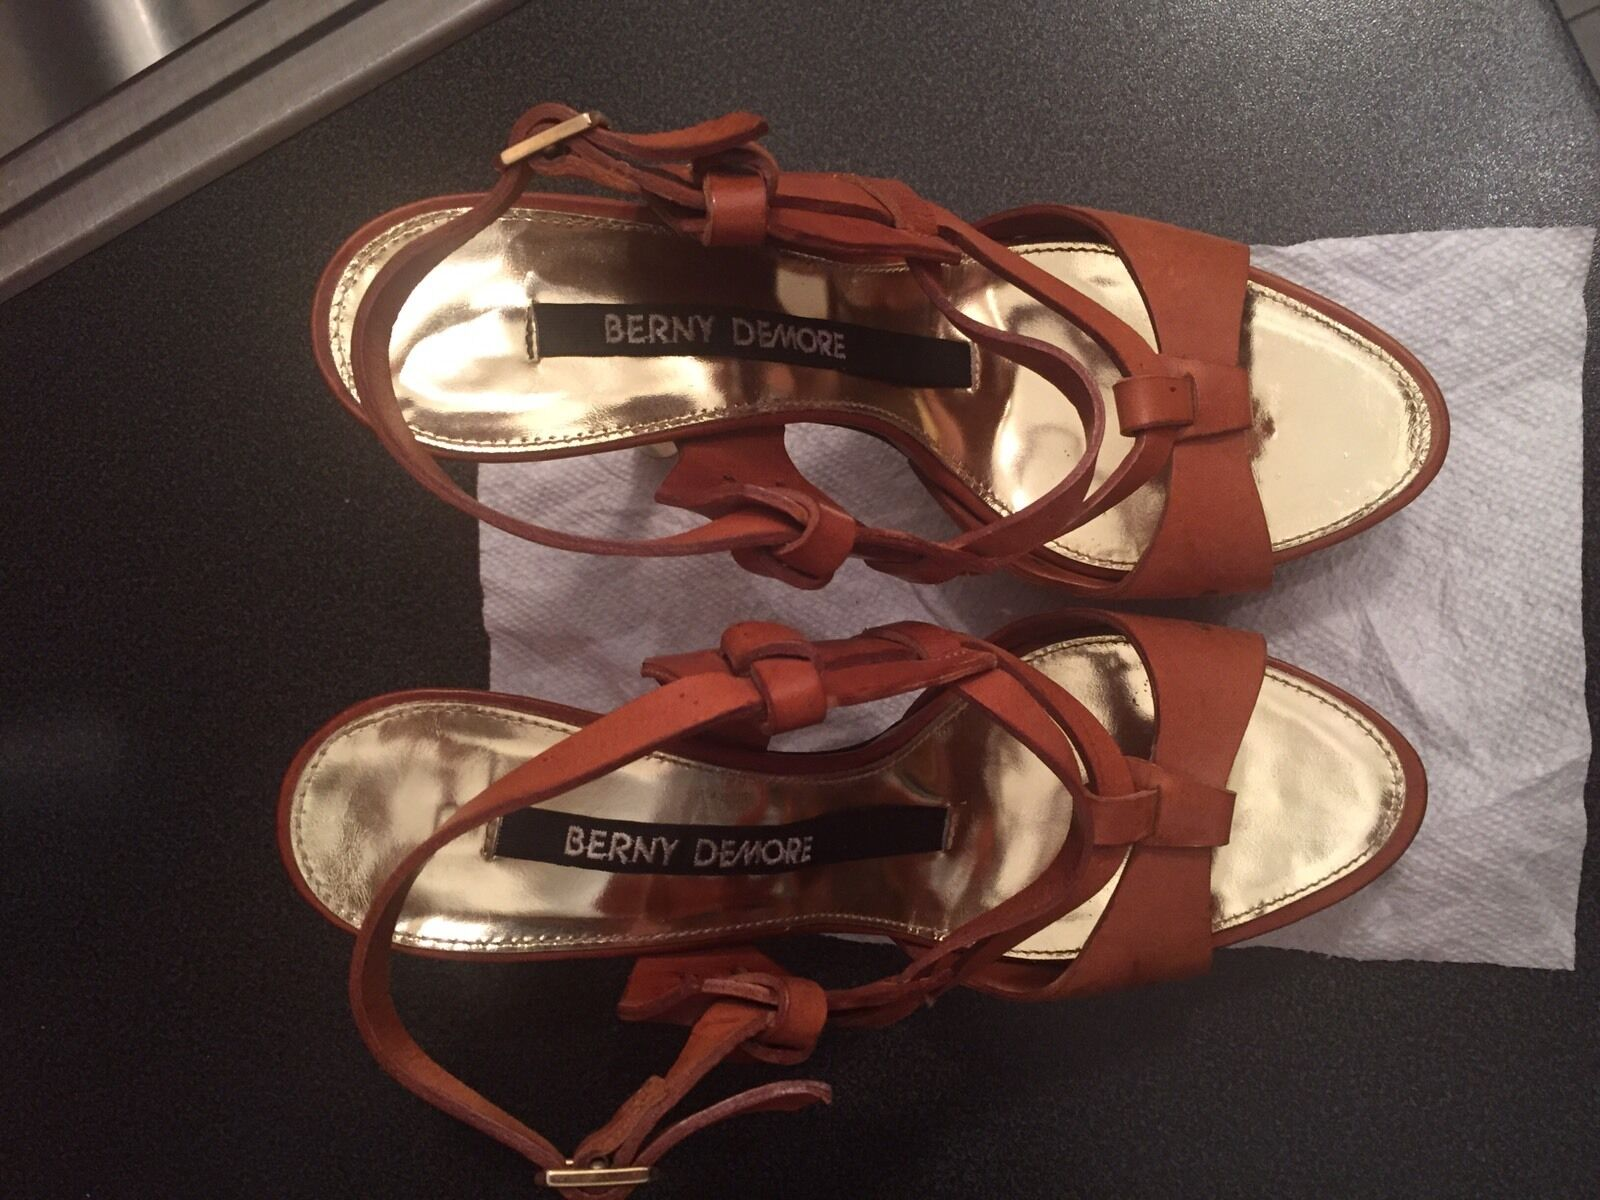 BERNY DEMORE Brown Leather Leather Leather Strappy Platform Stiletto SANDALS High Heels 39 1 2 ffd6ae